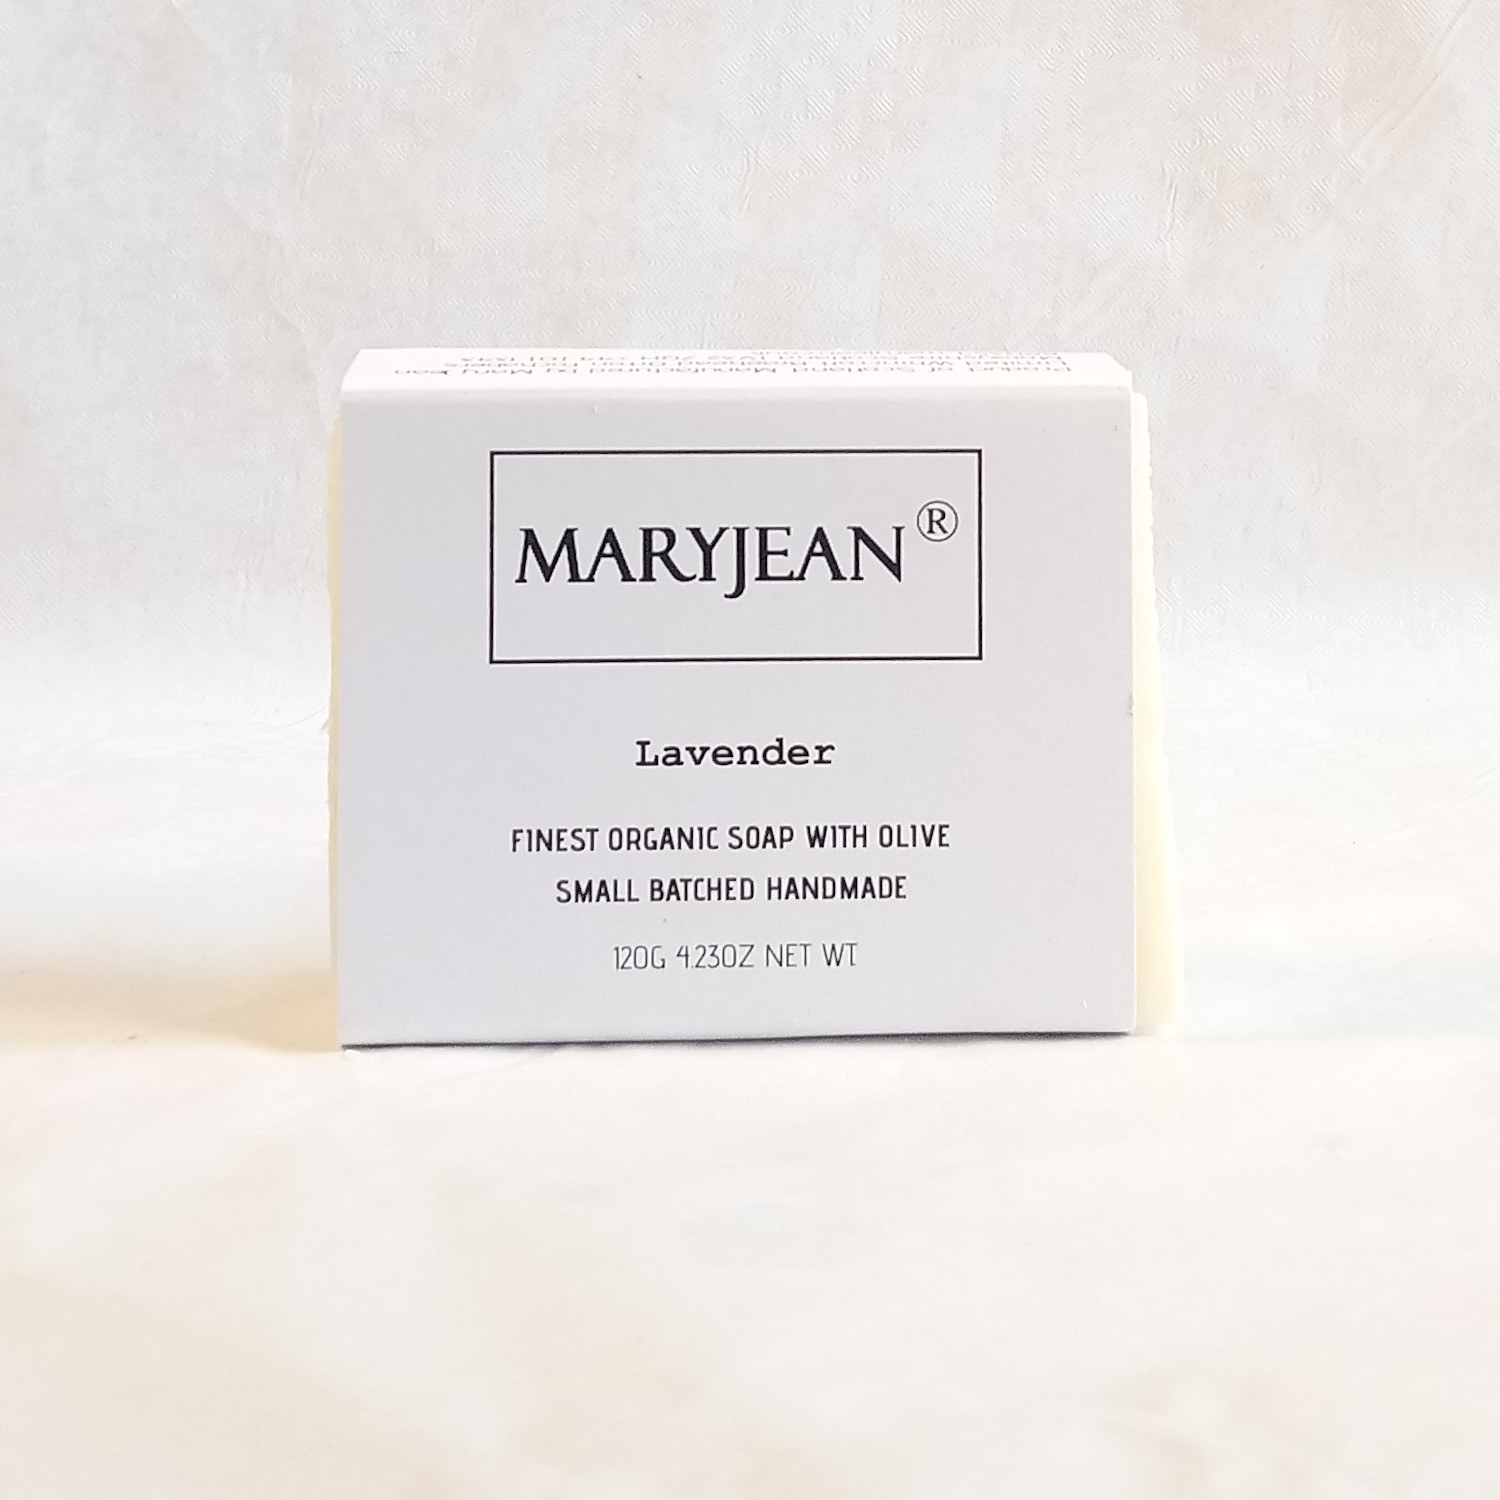 Natural bar of Lavender essential oil soap for dry skin conditions protects against sun damage with improved skin tone Twin Pack 2 Organic Scottish Lavender Plastic And Sulphate Free Soaps Handmade With Olive